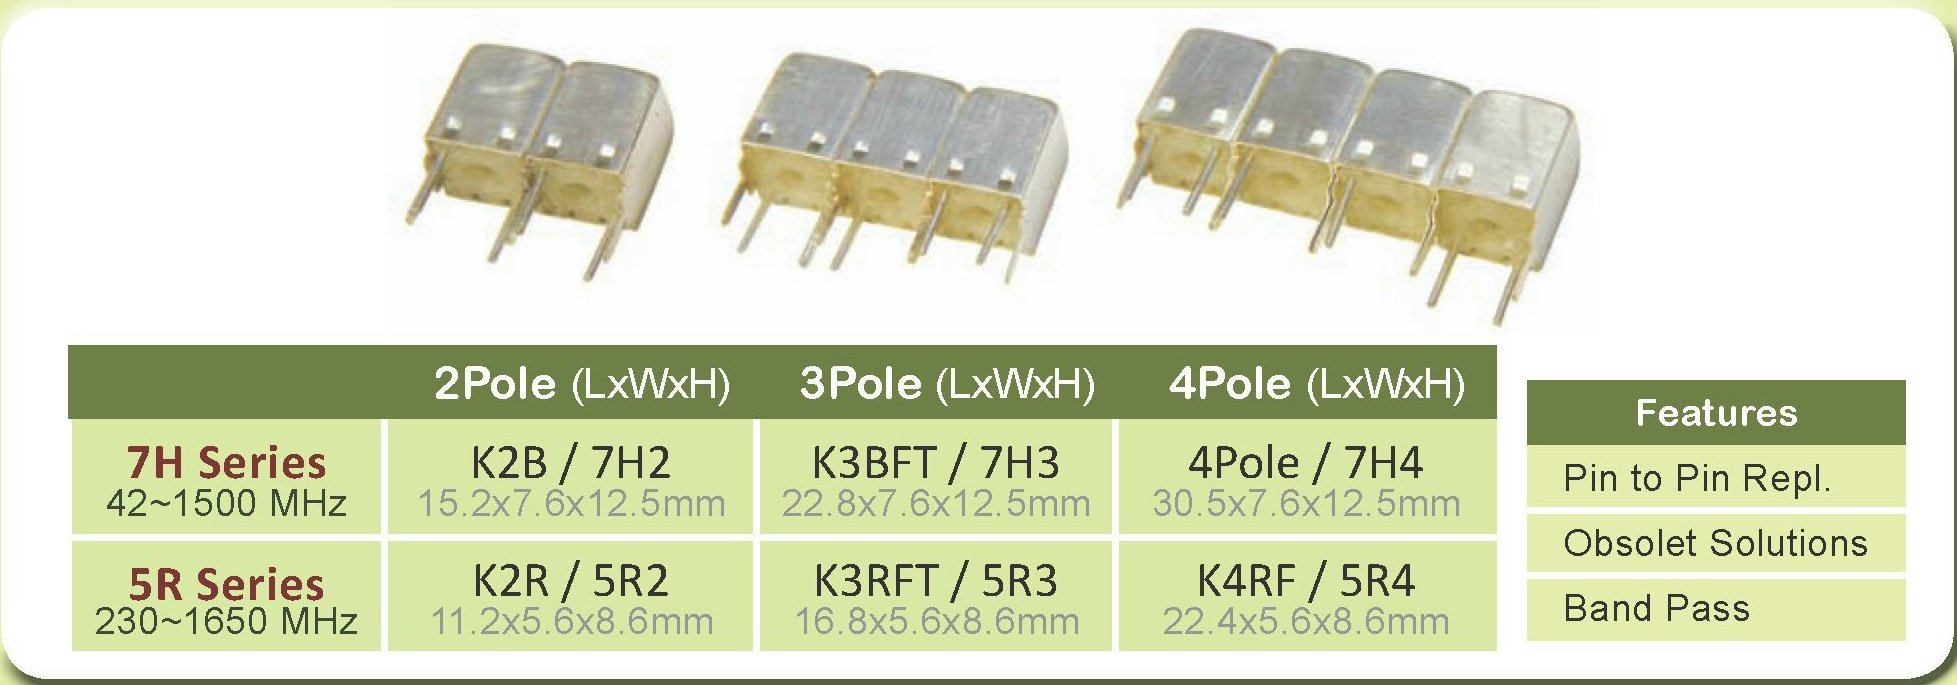 Taiwan Helical Bandpass Filters and Tunable Bandpass Filters